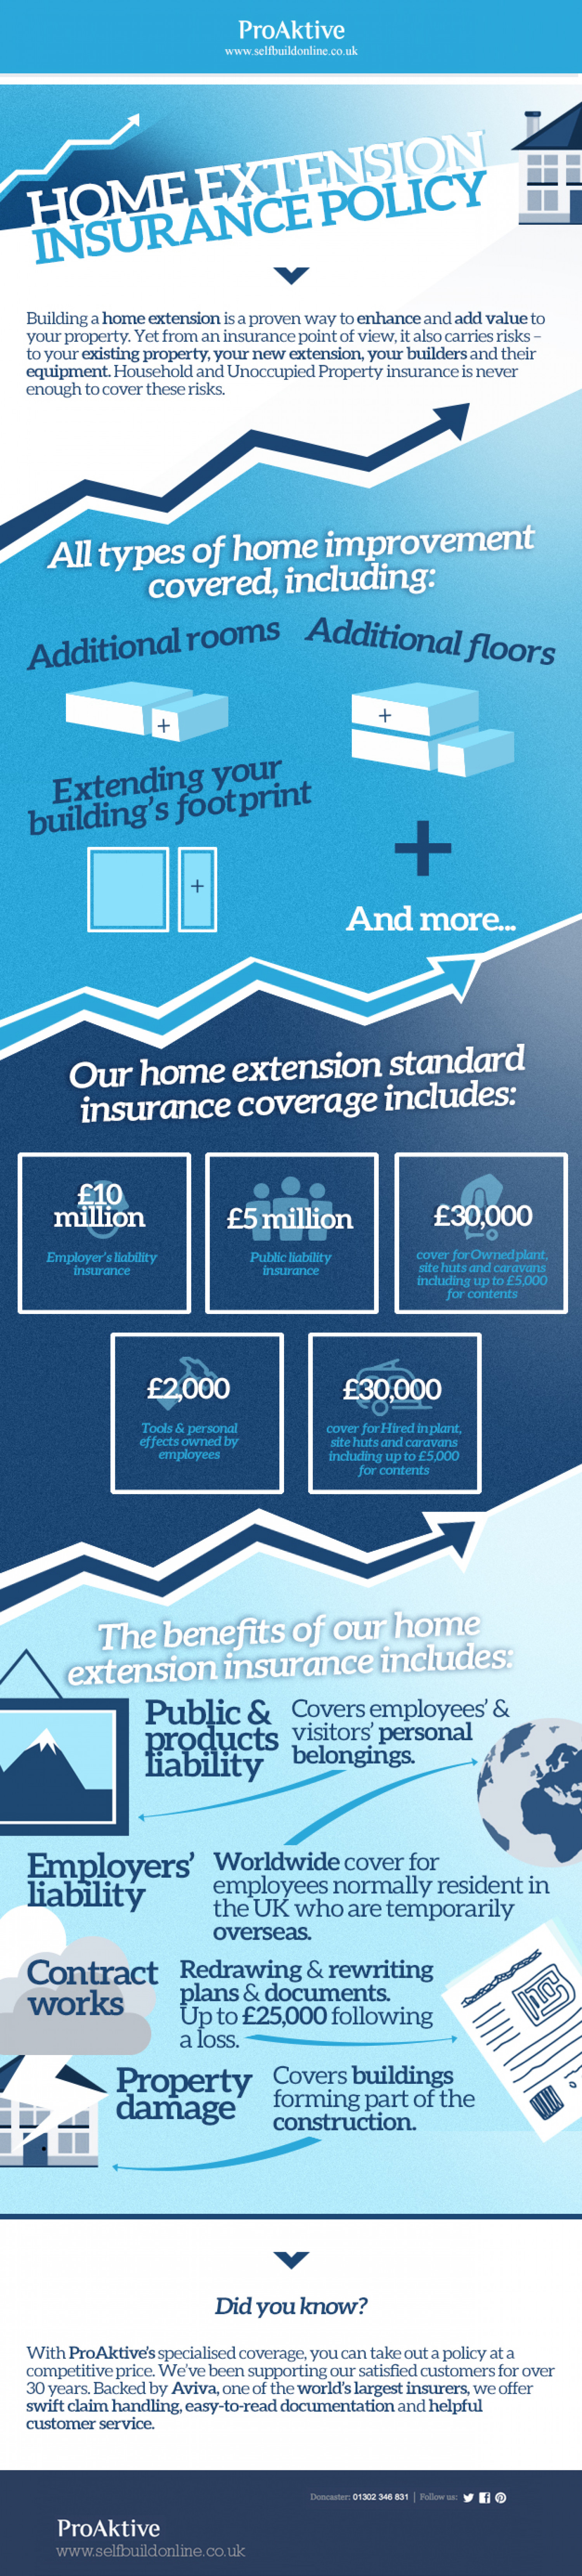 Home Extension Insurance Policy  Infographic